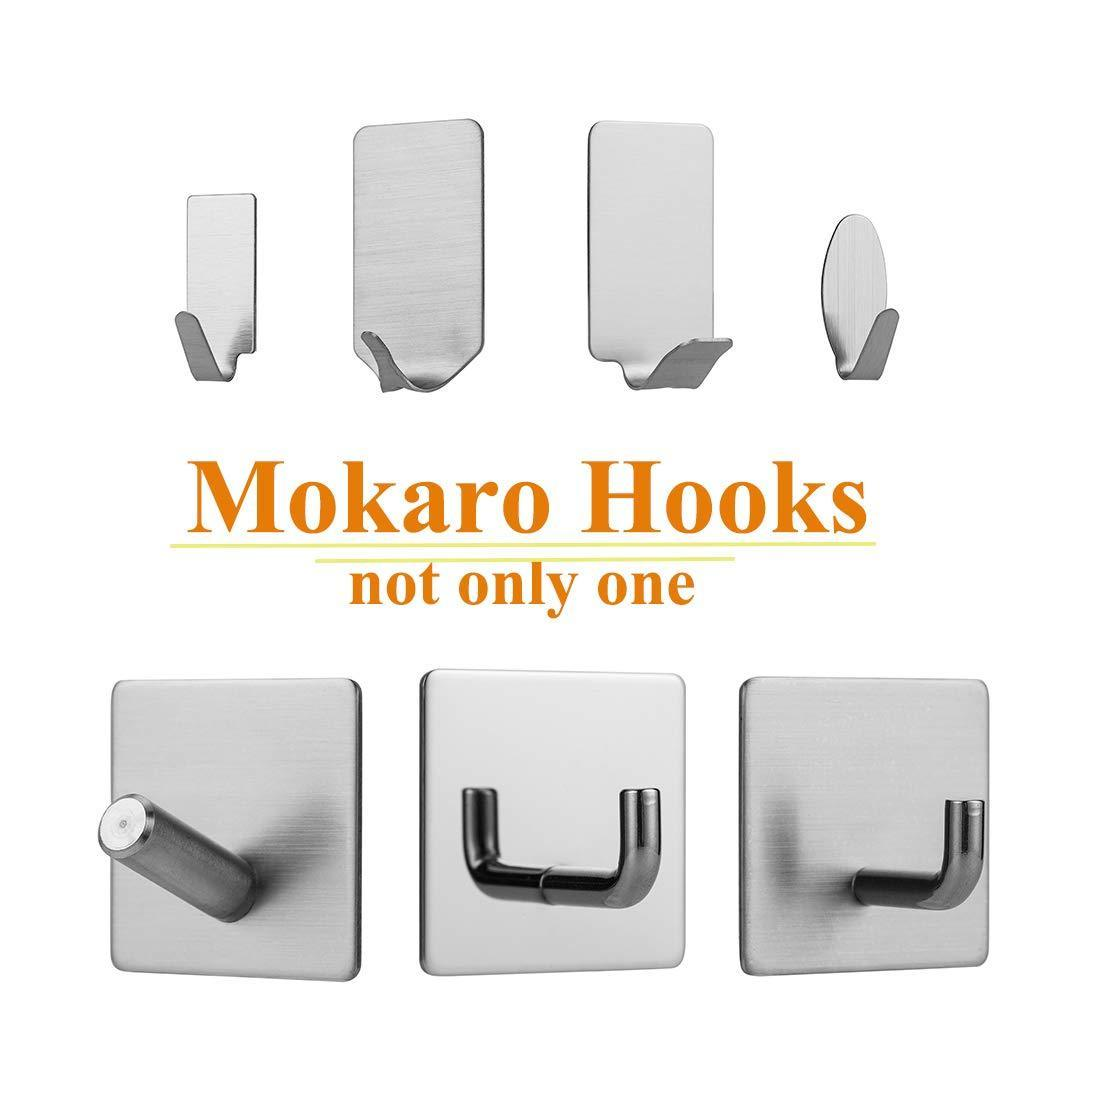 MOKARO Key Hooks Adhesive Brushed Stainless Steel, Mini Sticky Hooks,24-Hooks, Oval